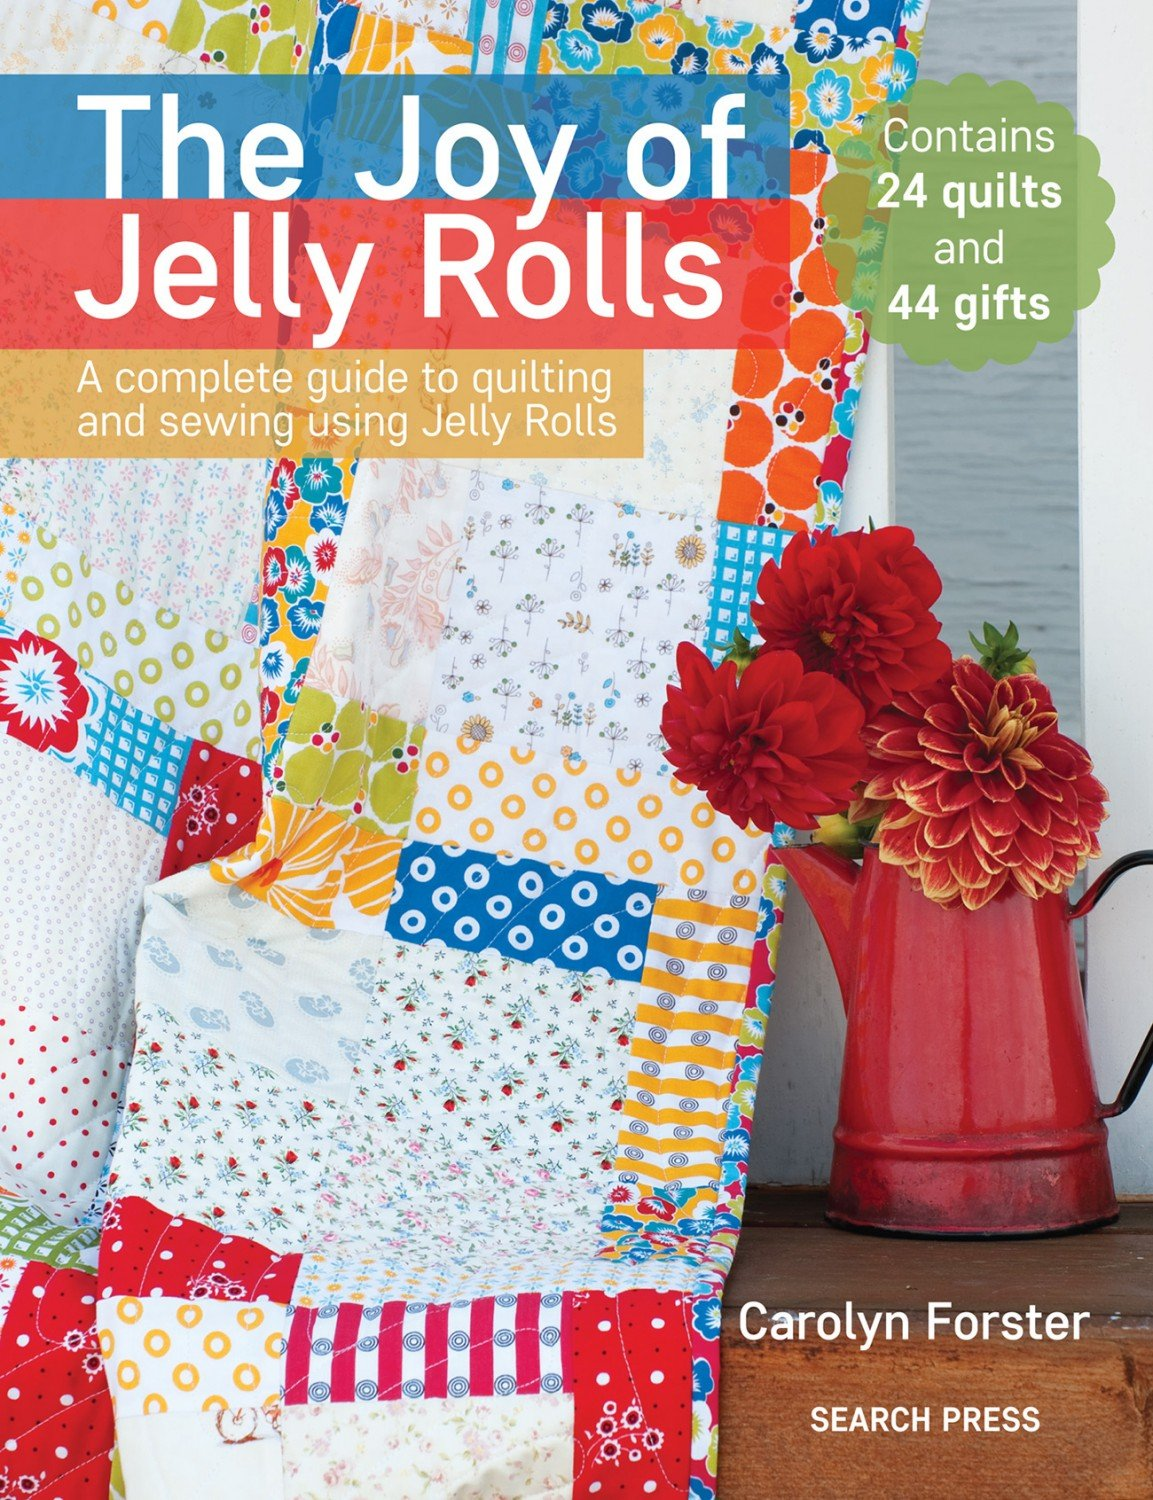 The Joy of Jelly Rolls Book